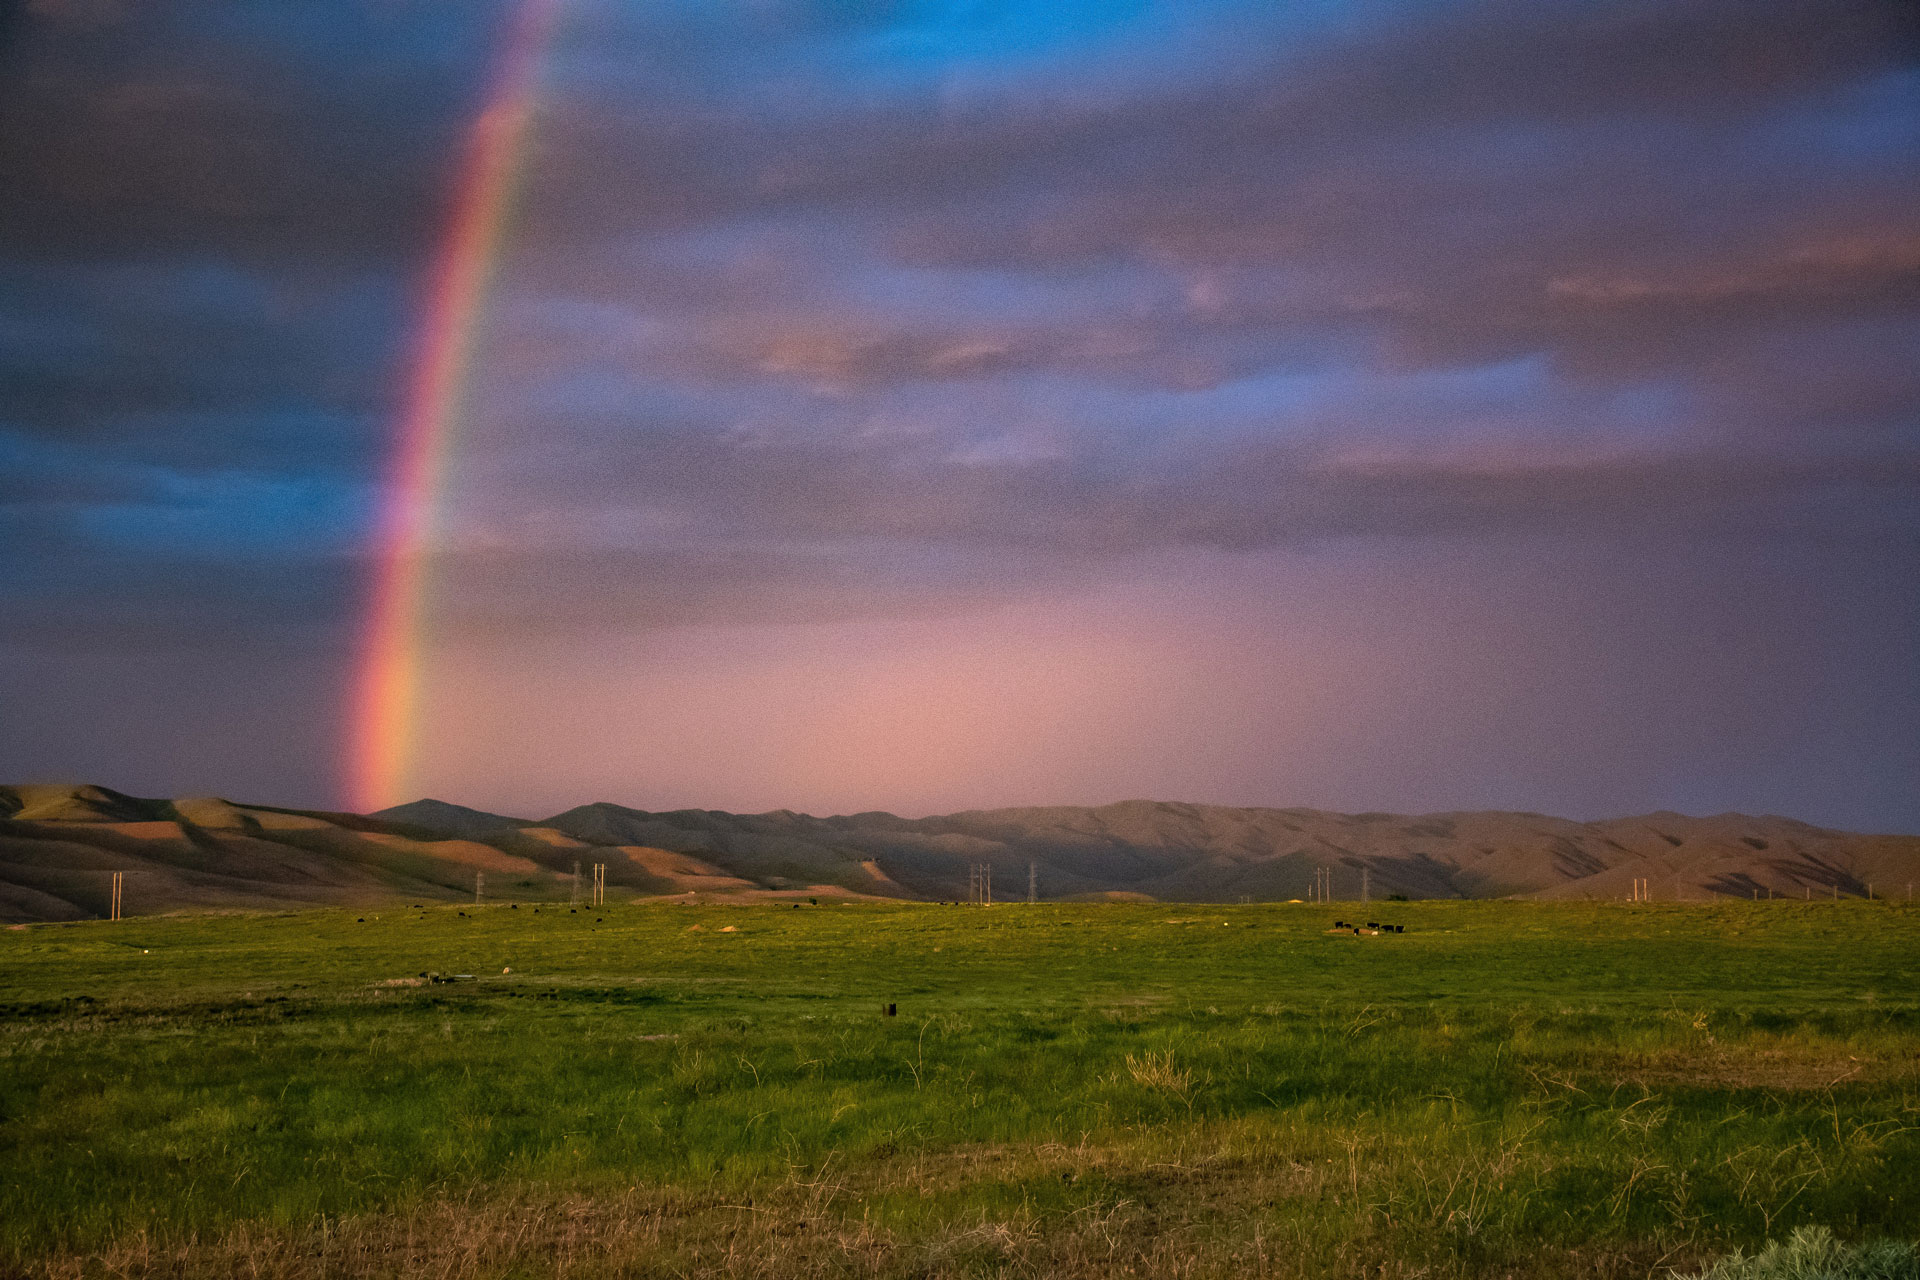 landscape-photography-of-mountains-with-rainbow-1121888